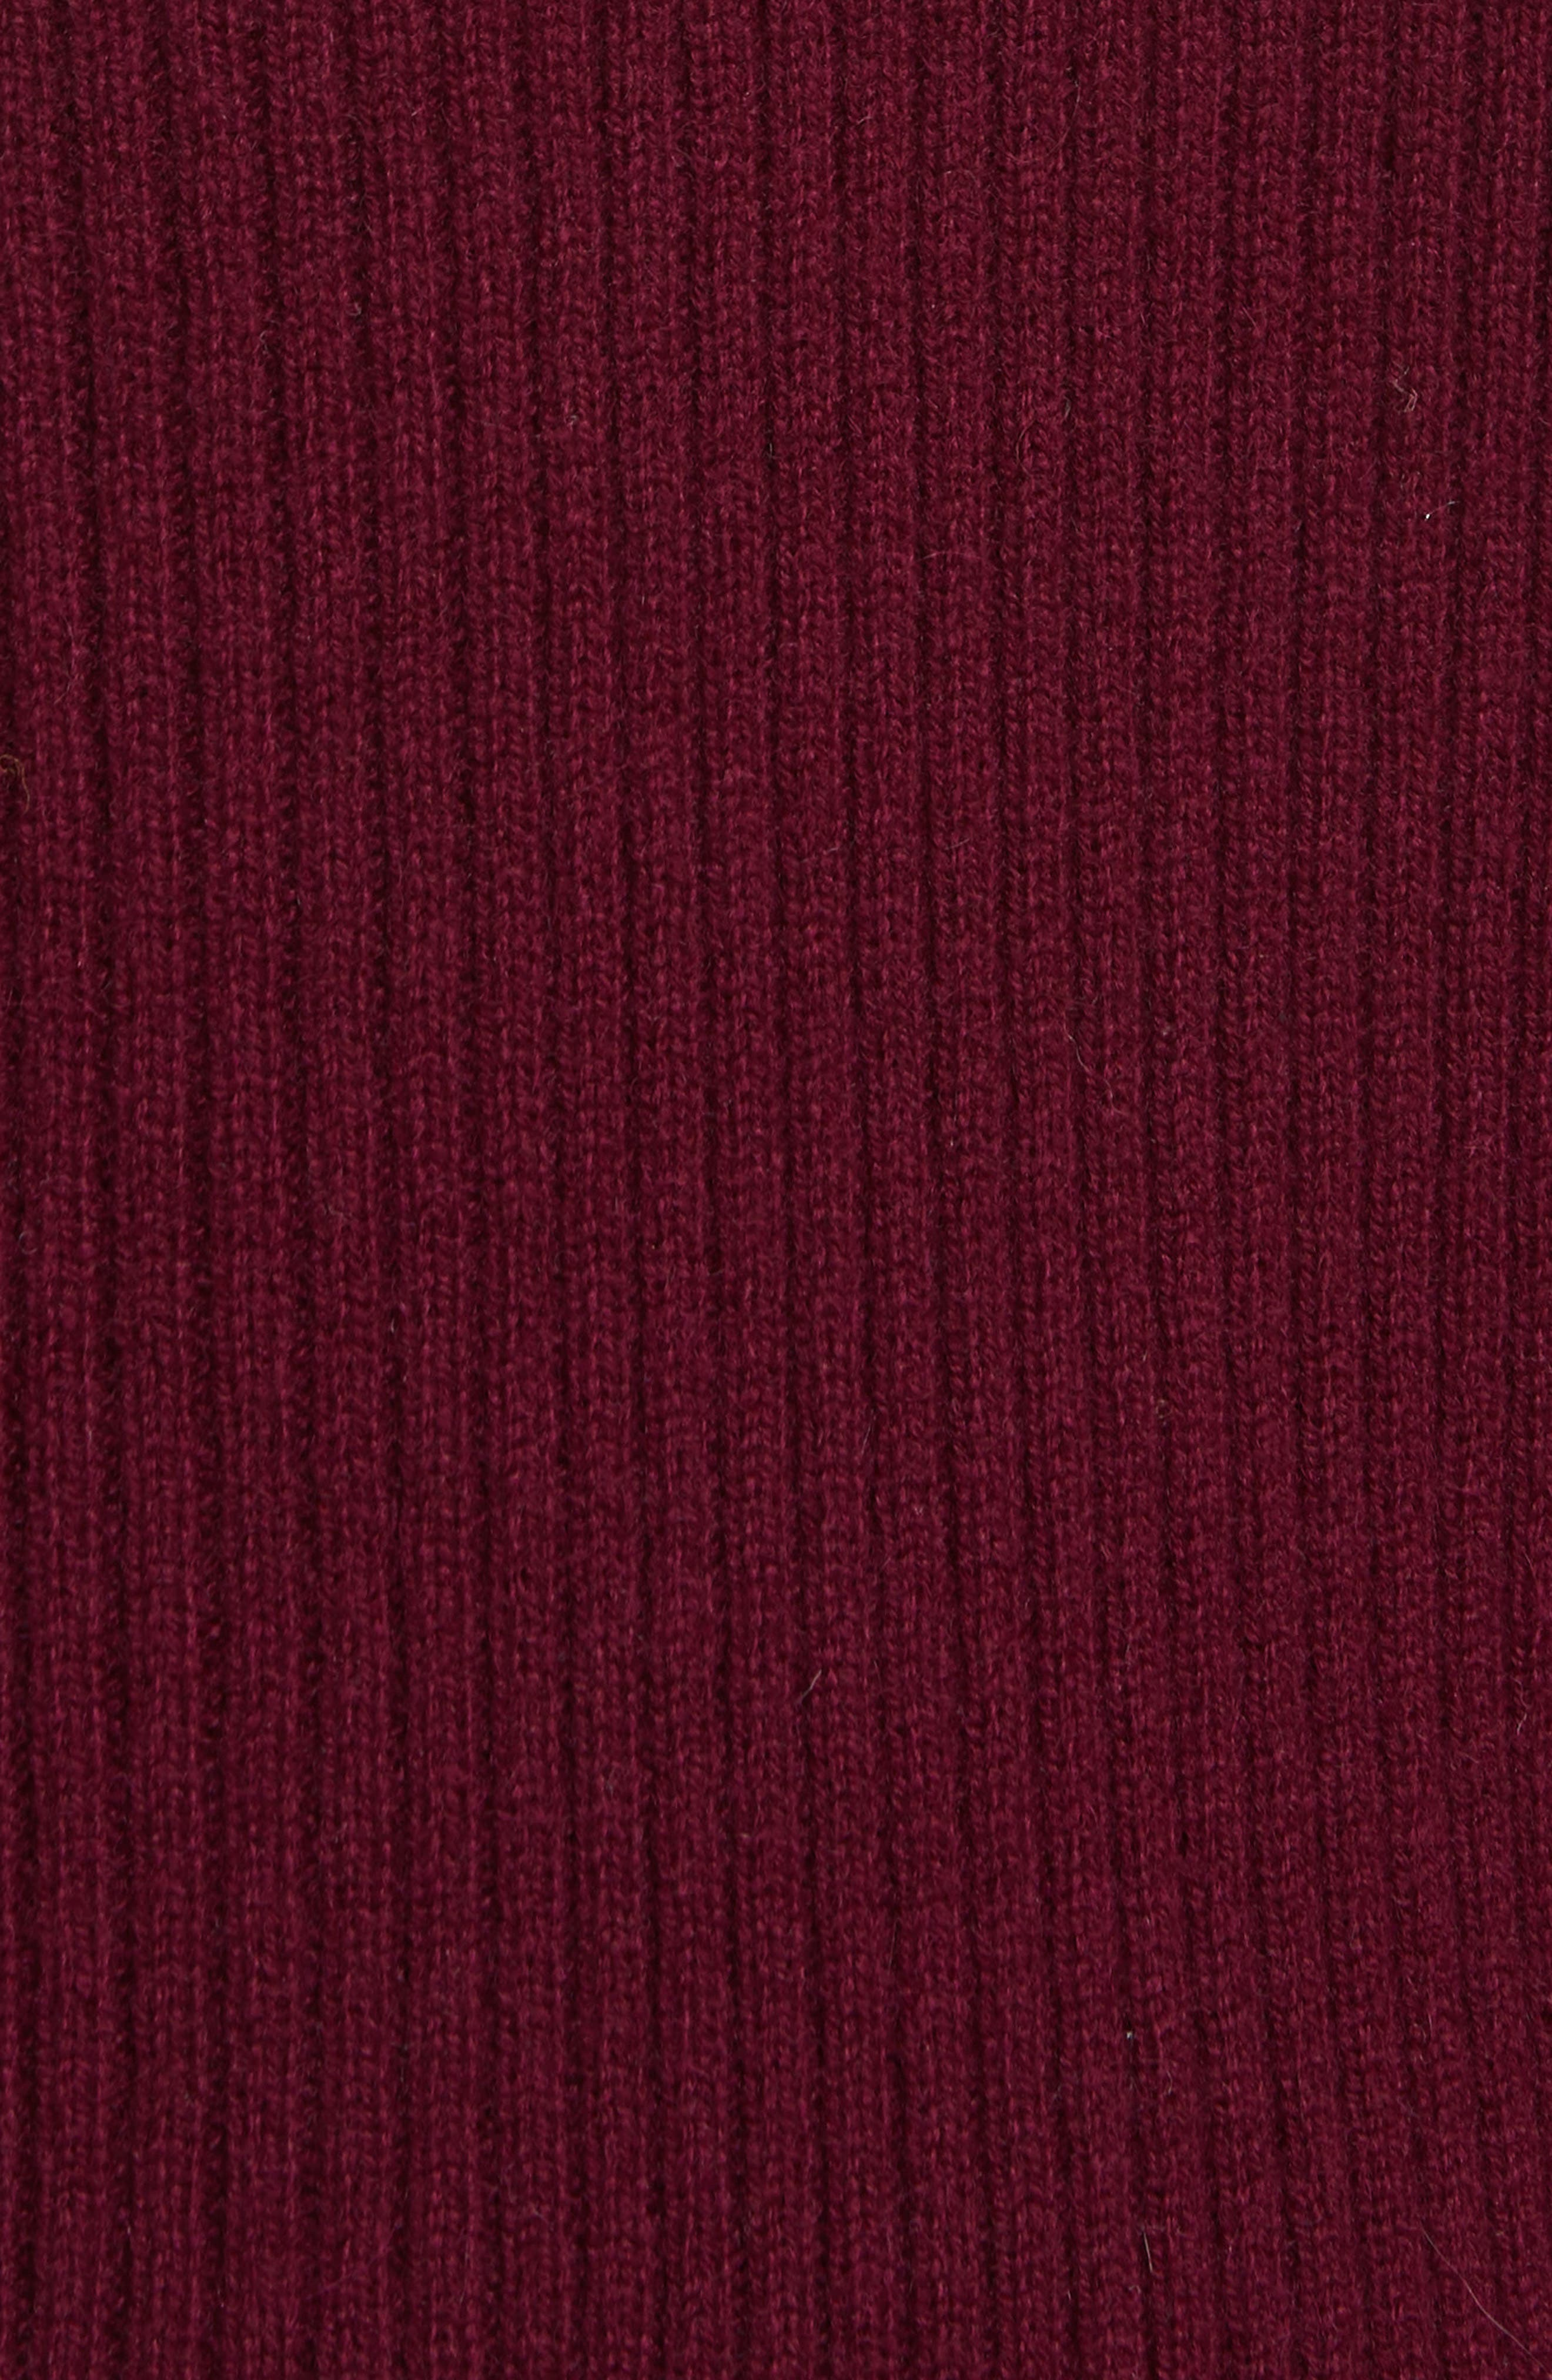 Bishop Sleeve Cashmere Sweater,                             Alternate thumbnail 5, color,                             933